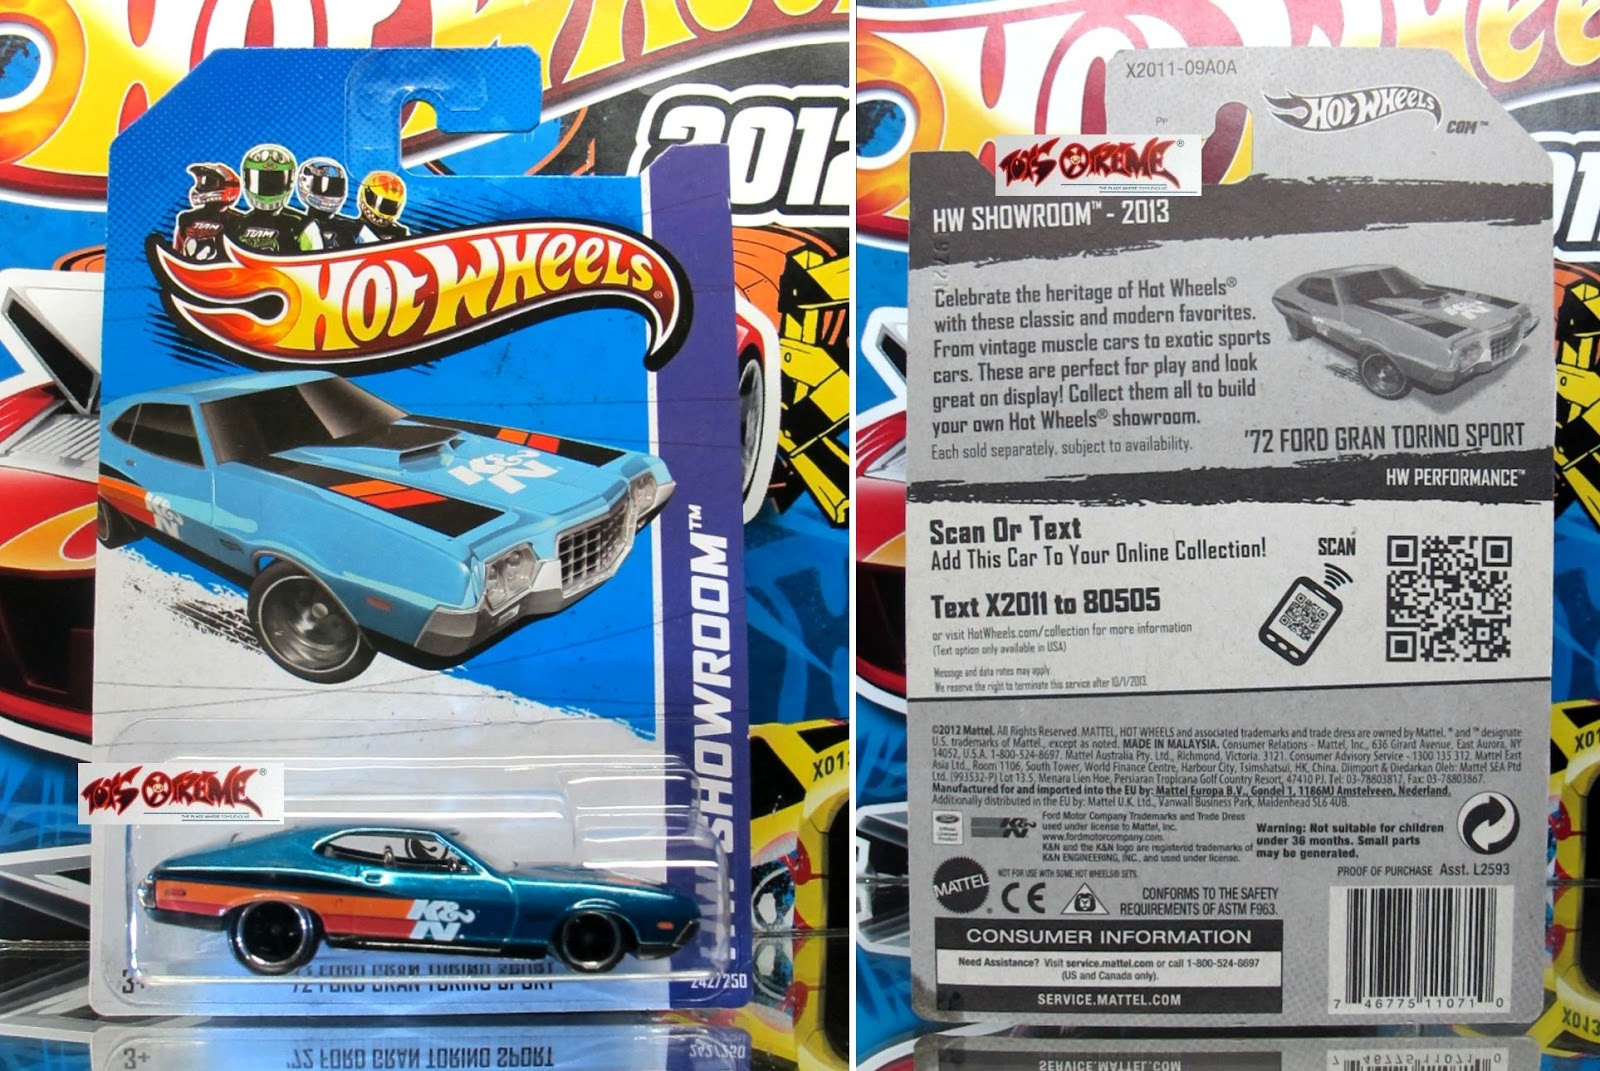 Kelvinator21s Hot Wheels